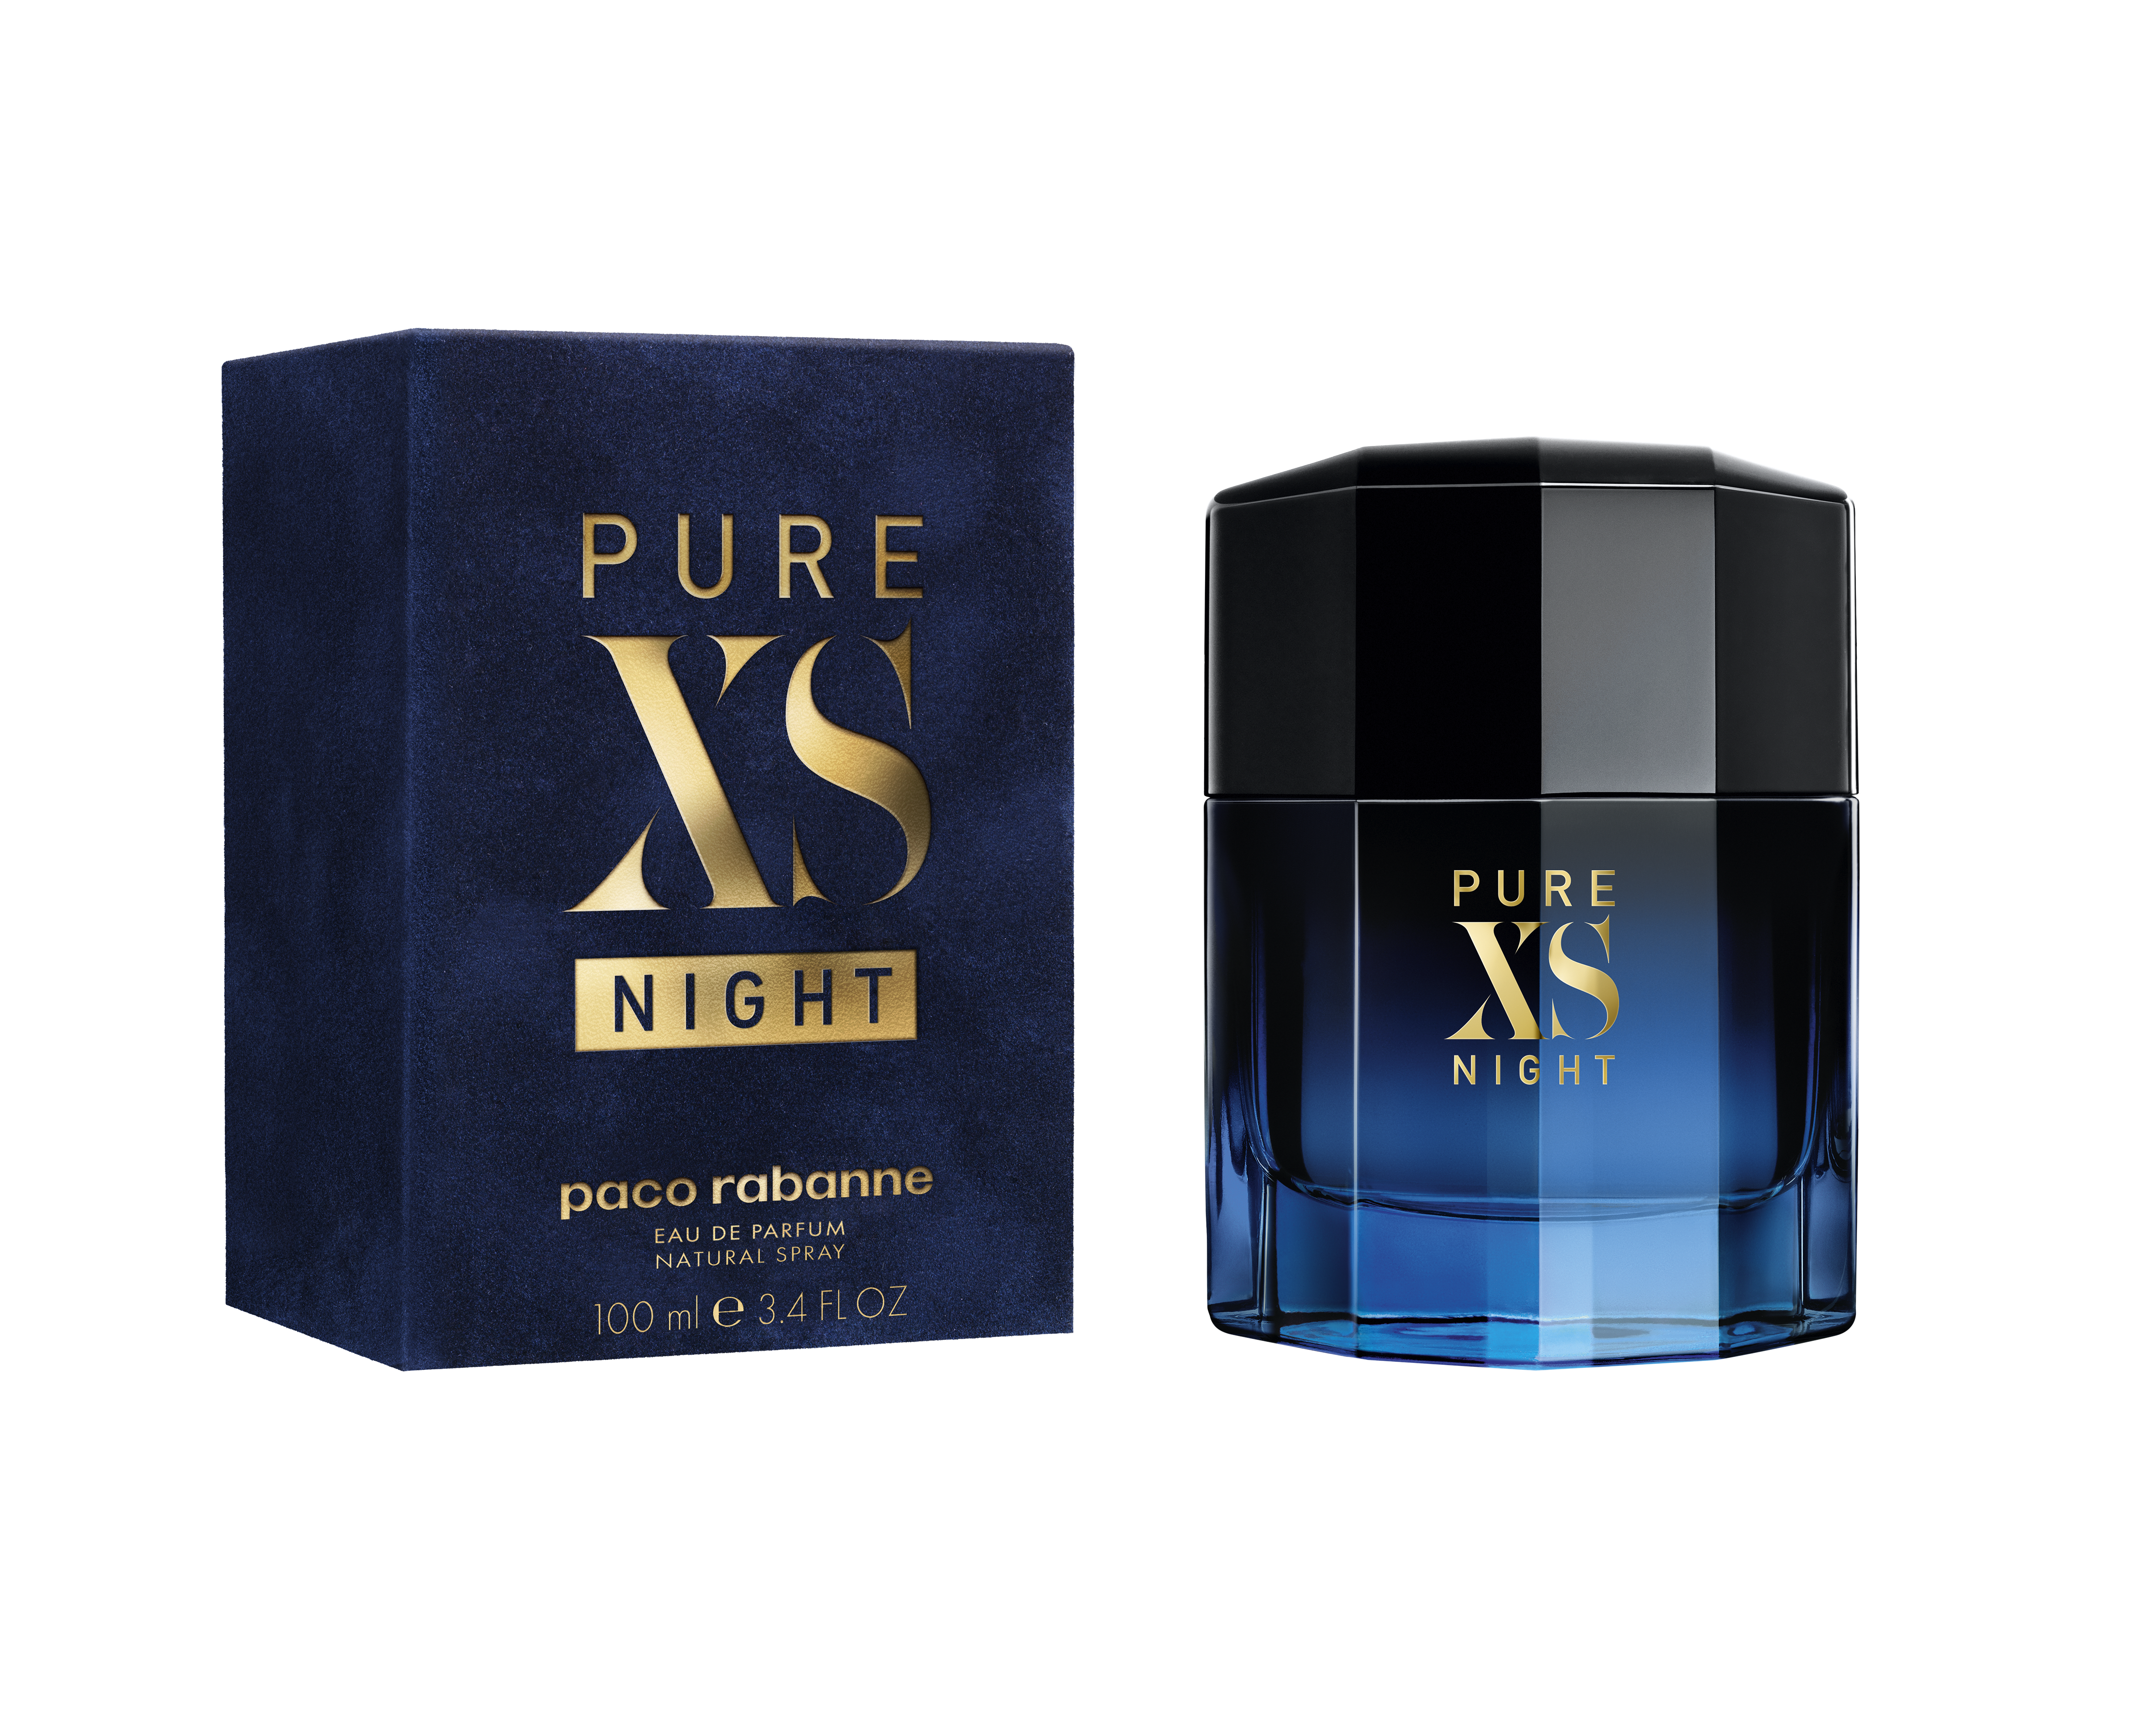 Pure XS Night - Pure XS Night - Paco Rabanne